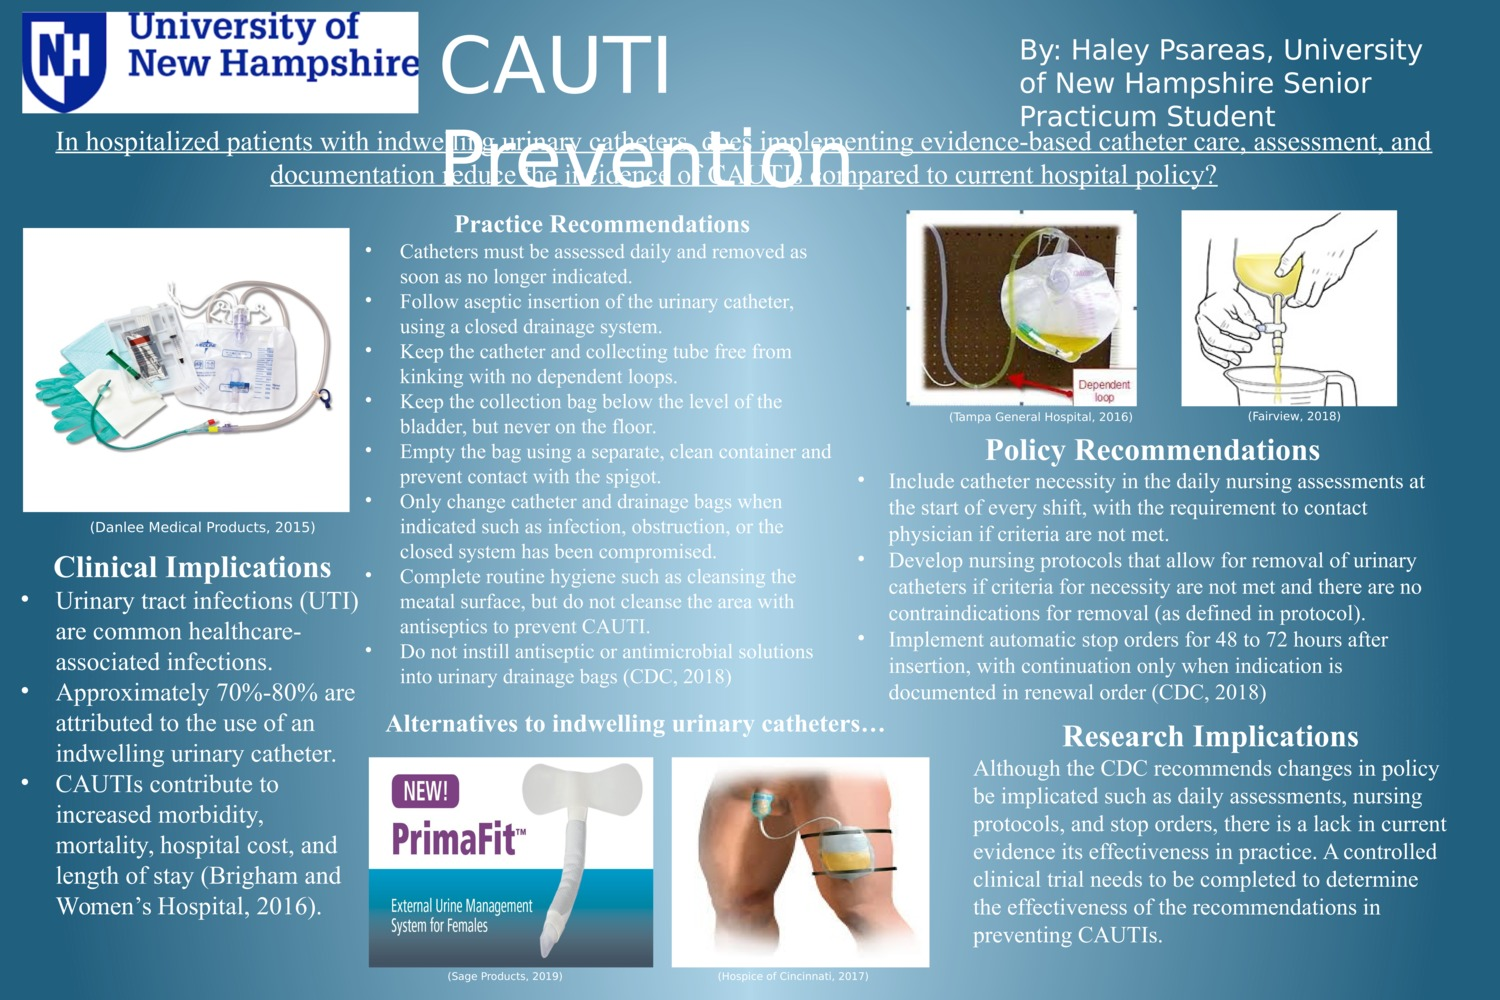 Cauti Prevention by hnp1000